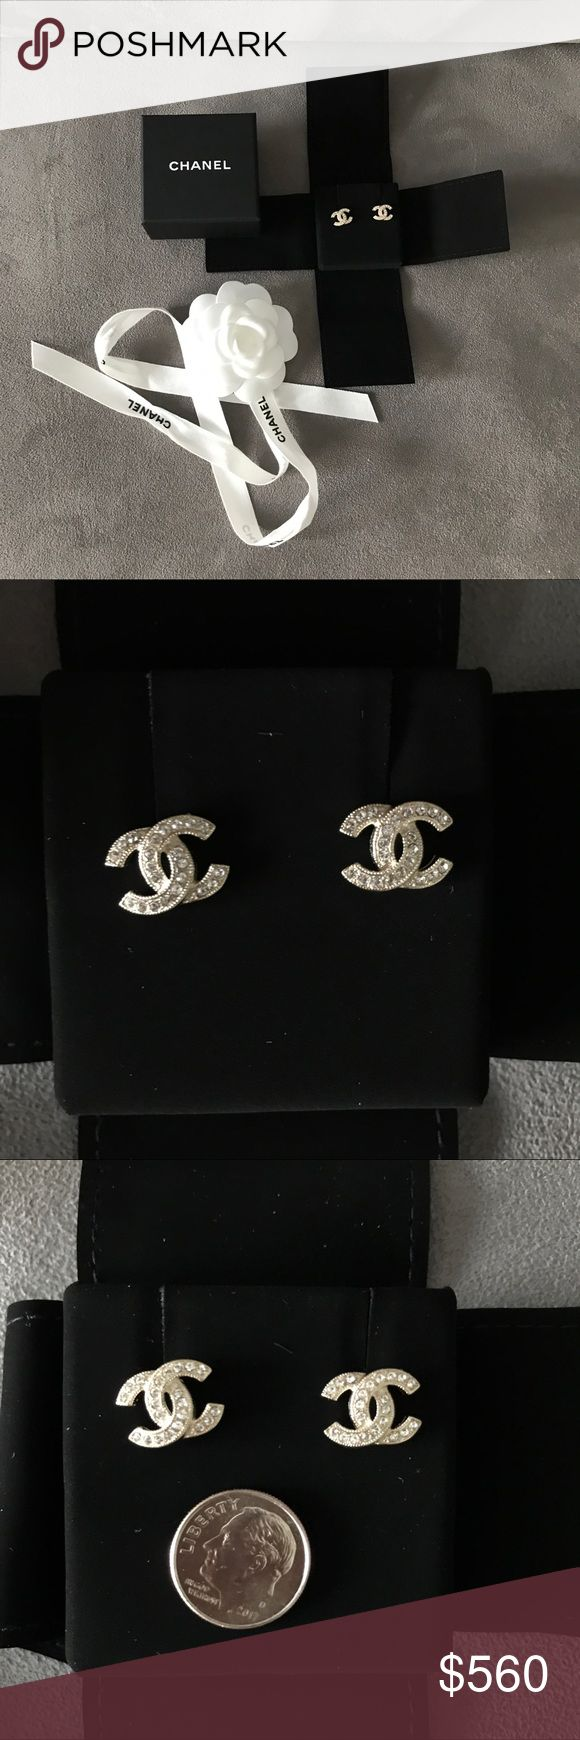 Chanel earrings authentic NIB Authentic, brand new in box and never worn chanel cc earrings in slight gold color hardware with crystals. These gorgeous day to night earrings are a must have. From the current collection. They are guaranteed authentic as I purchased them myself directly from a chanel store in Paris. Come with all original packaging as shown :) don't miss out they will sell quickly! 🅿️🅿️ $475 shipped provide 📧 for in voice CHANEL Jewelry Earrings